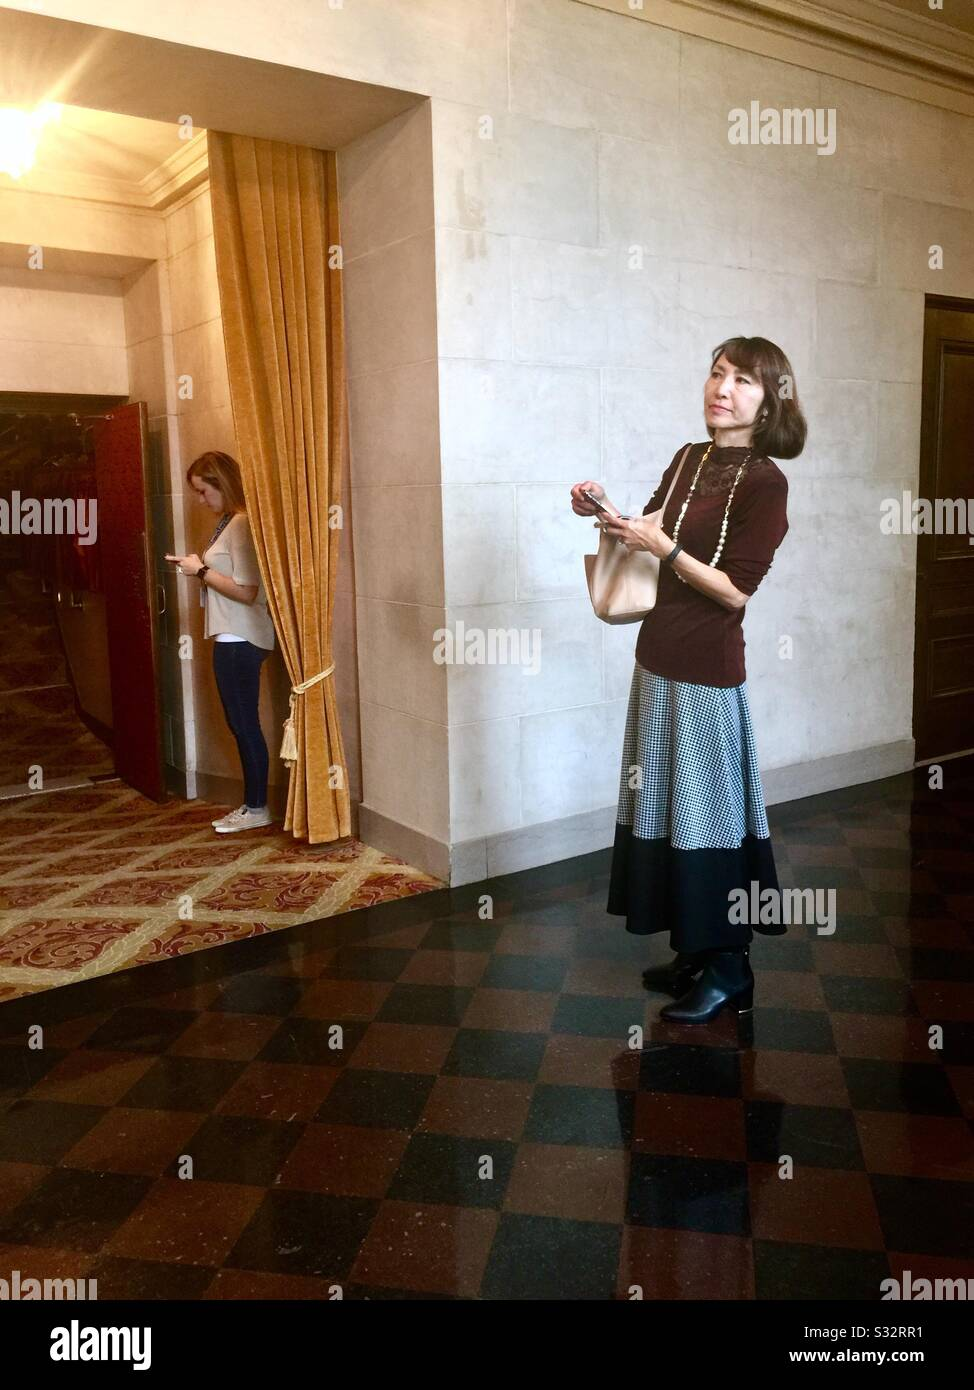 Two women waiting in the halls at the elegant War Memorial Opera House during intermission. One woman waiting for a friend, the other looking at her cell phone. San Francisco, California. Stock Photo